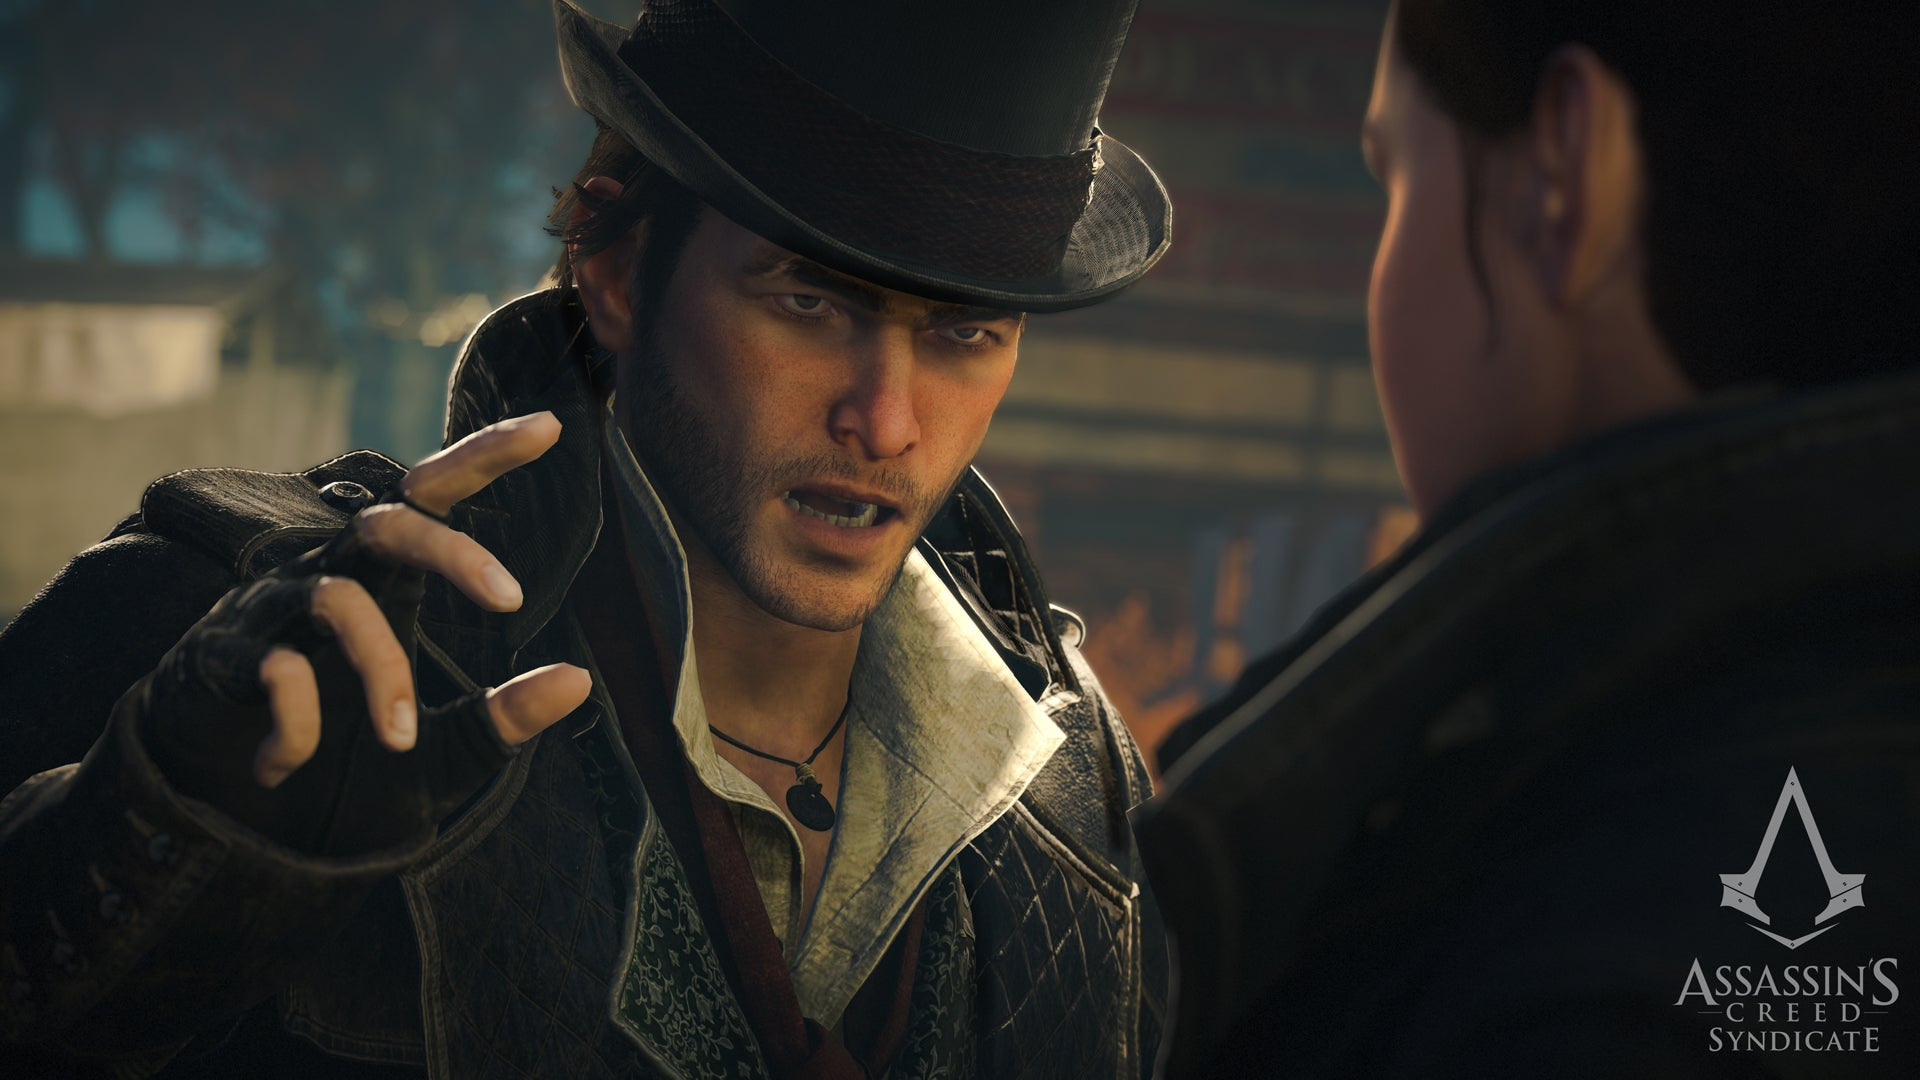 What To Make Of Assassin's Creed Syndicate, One Month Out